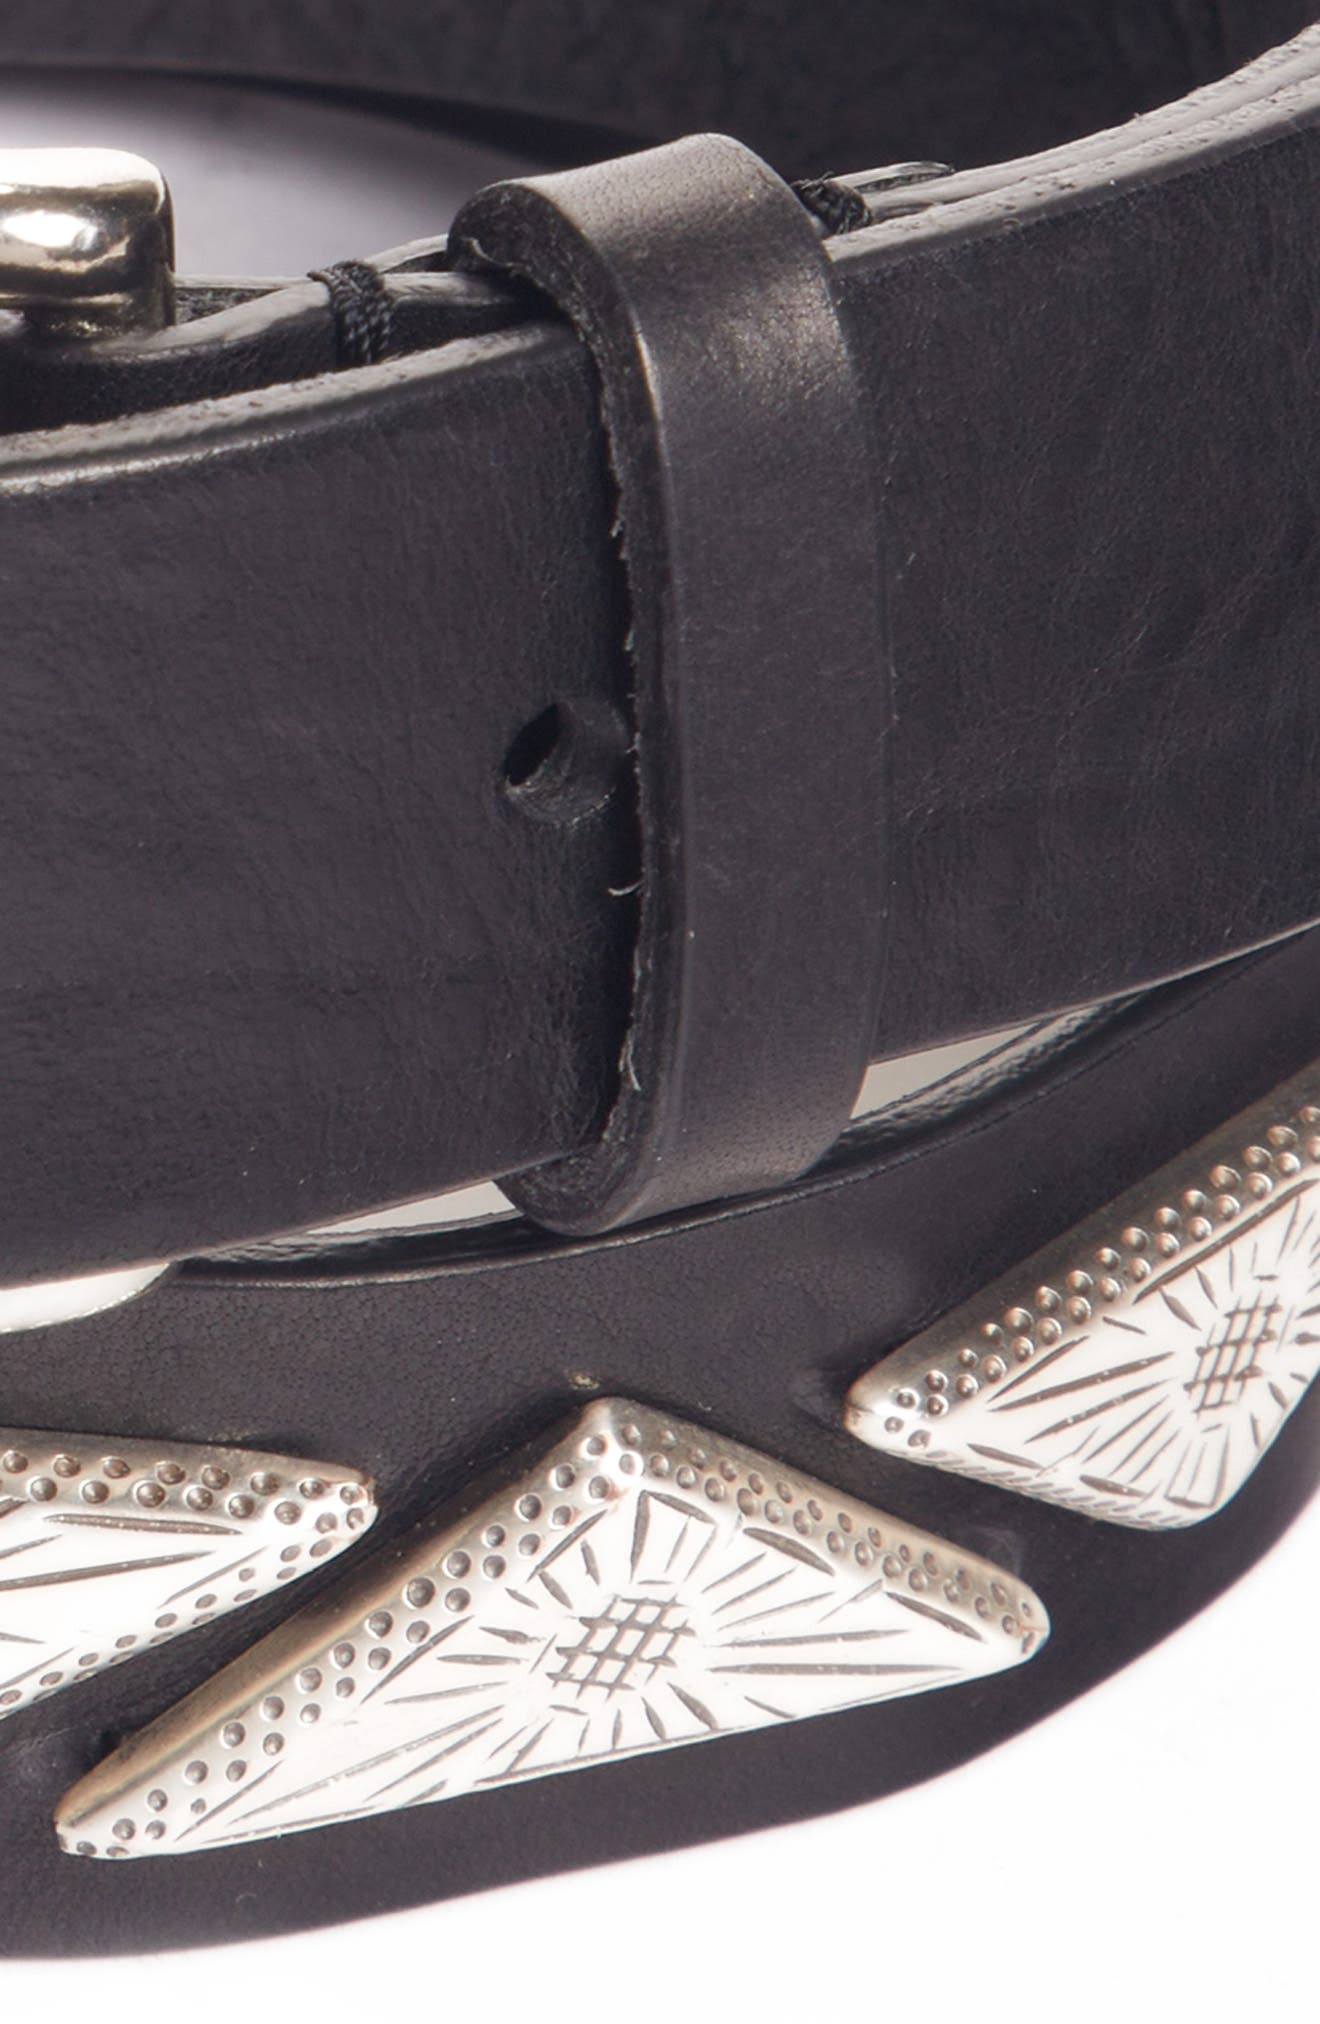 Nyzo Studded Leather Belt,                             Alternate thumbnail 2, color,                             001